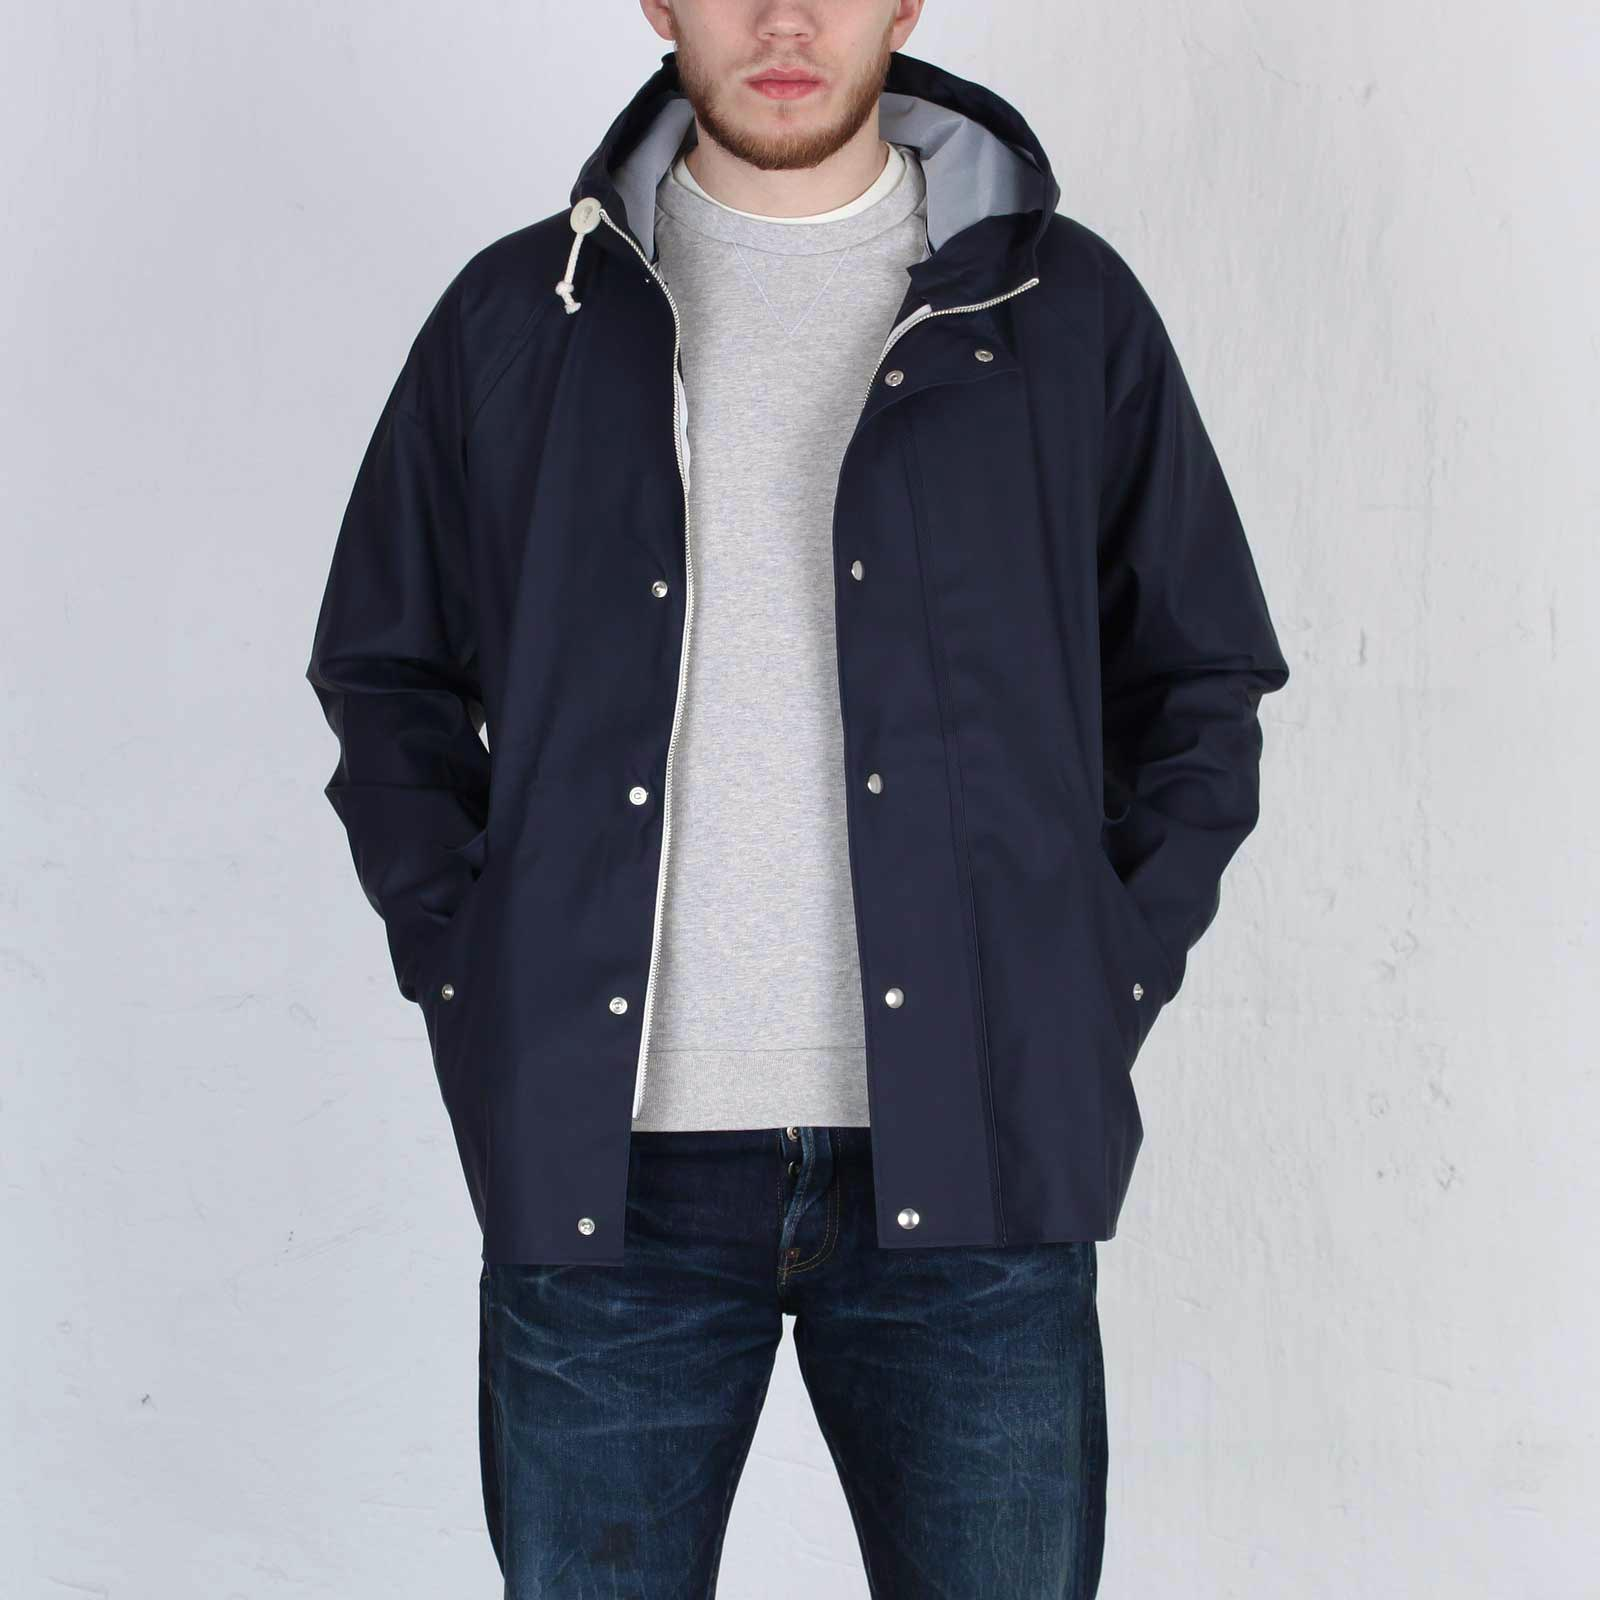 Norse Projects Elka Classic Jacket Norse Projects Elka Classic Jacket ... 6ad89413f7a3